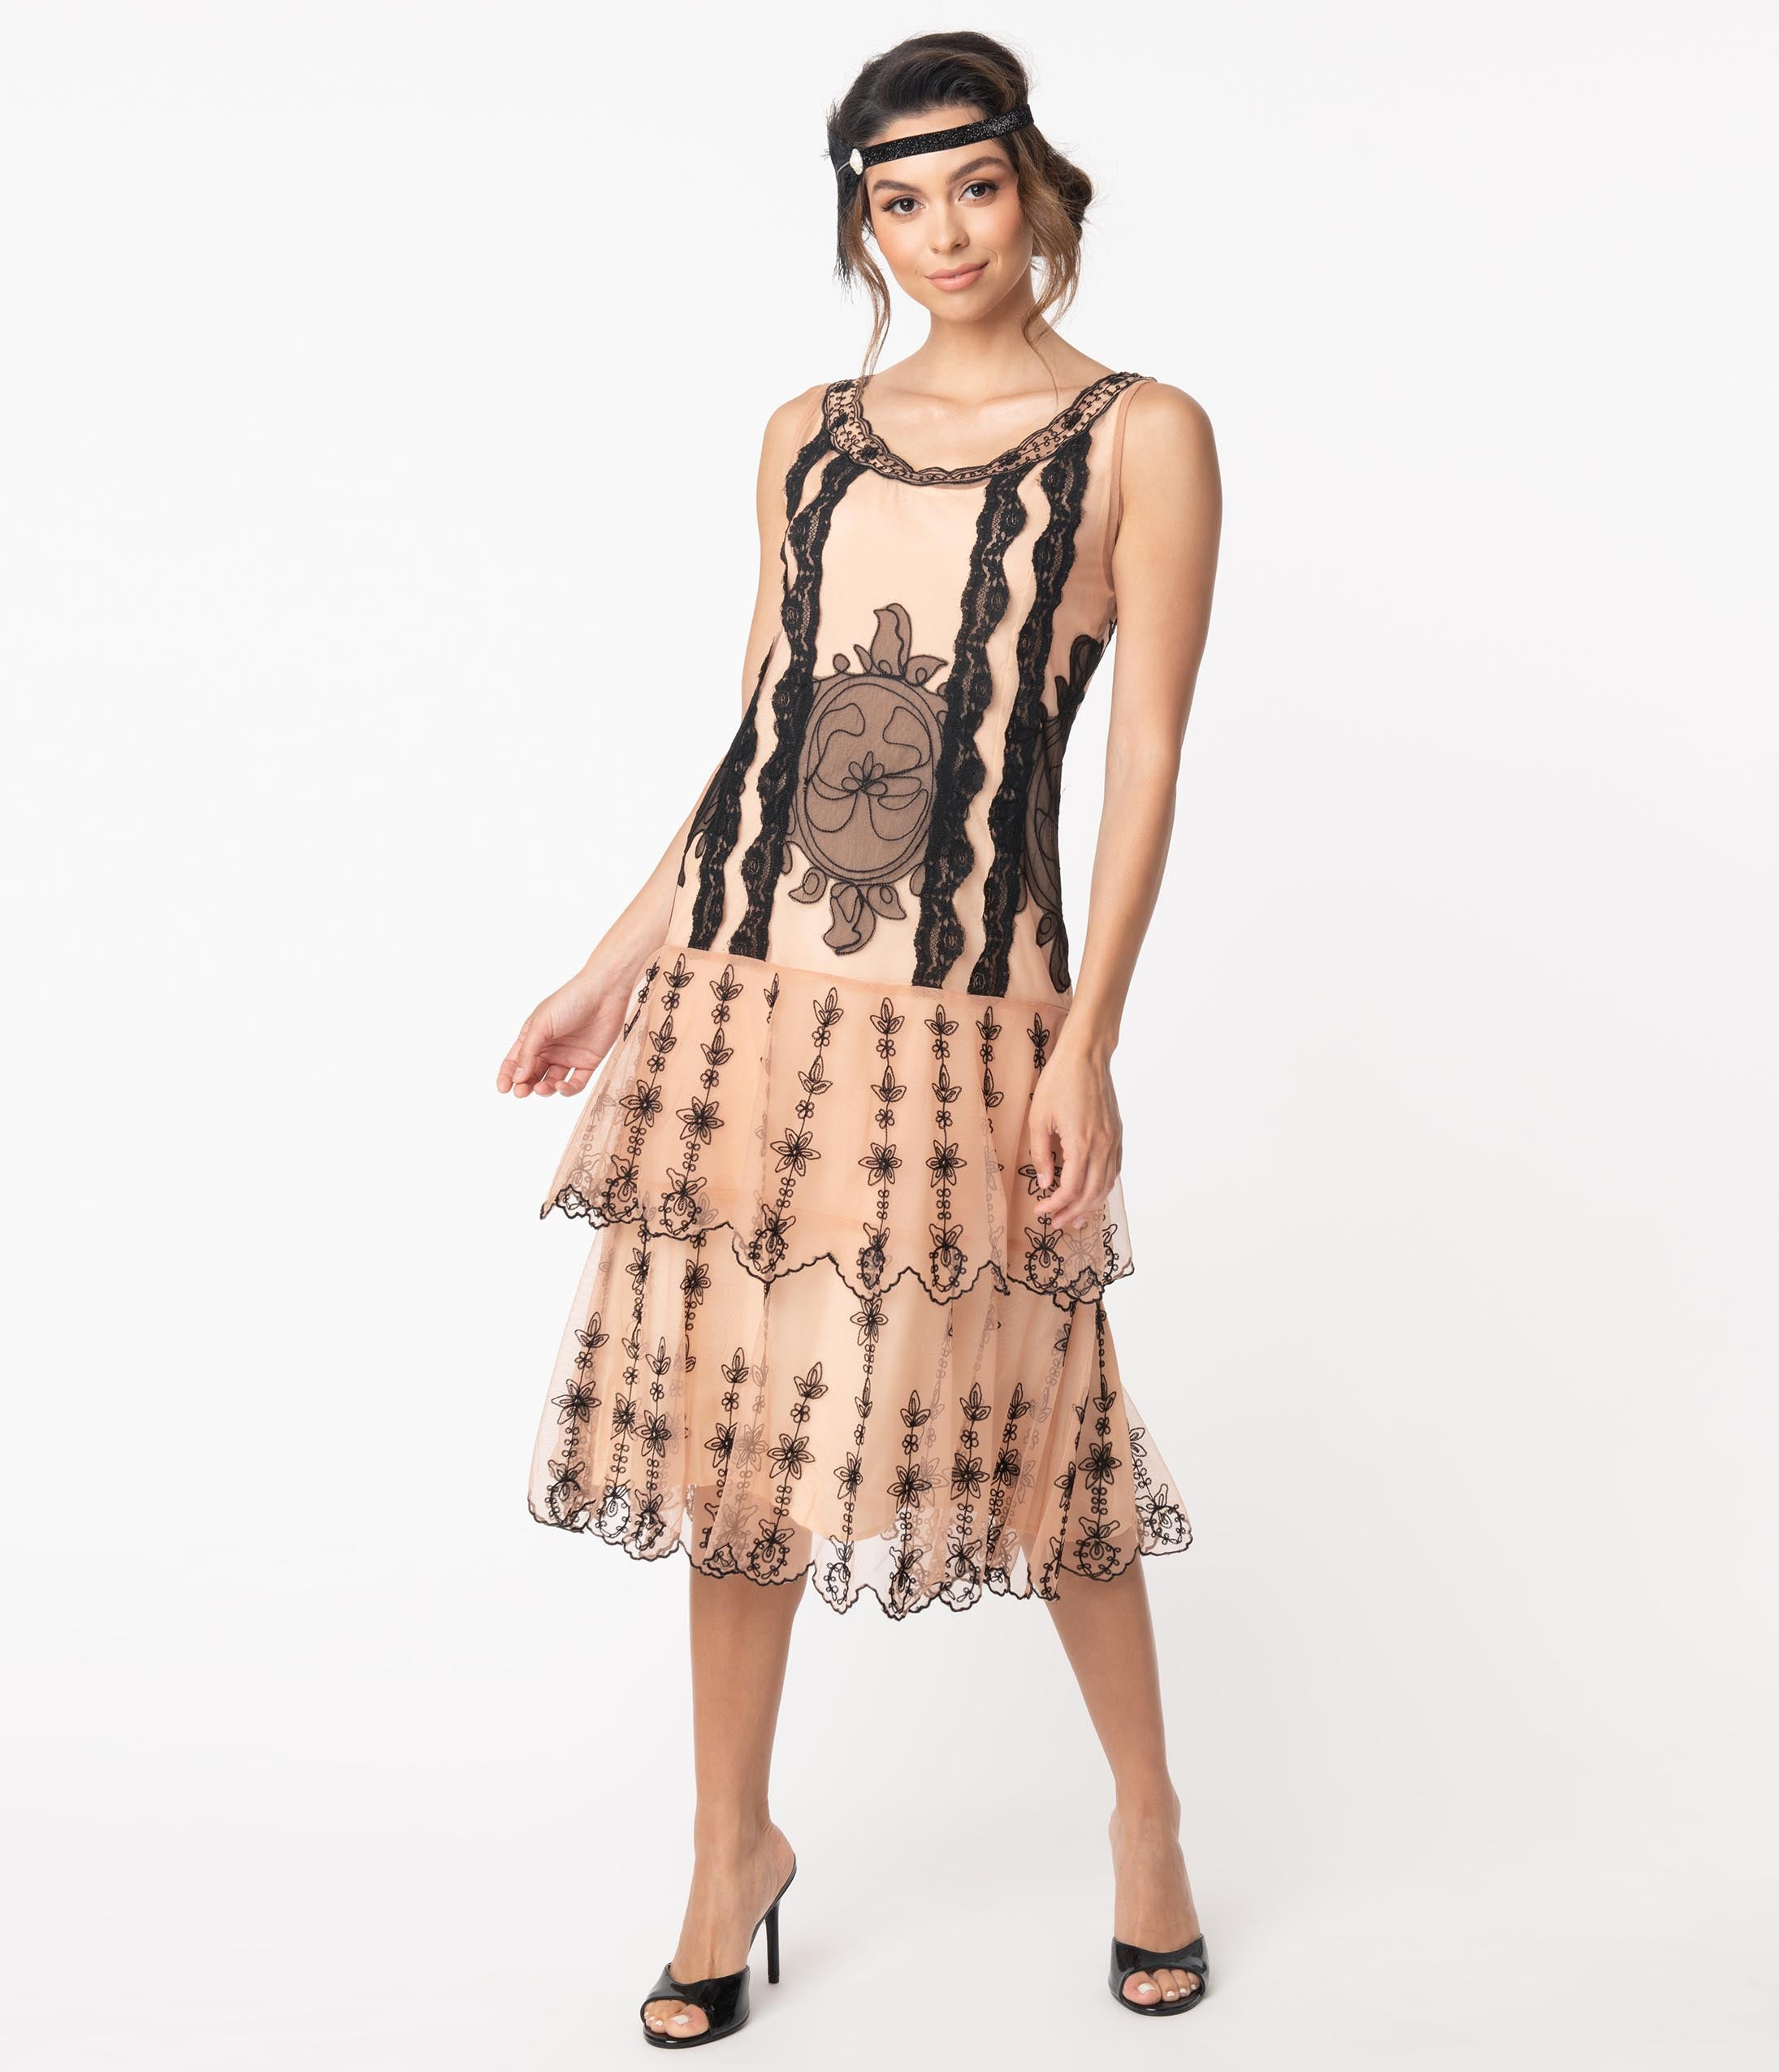 1920s Evening Dresses & Formal Gowns 1920S Style Peach  Black Embroidery Eva Flapper Dress $268.00 AT vintagedancer.com